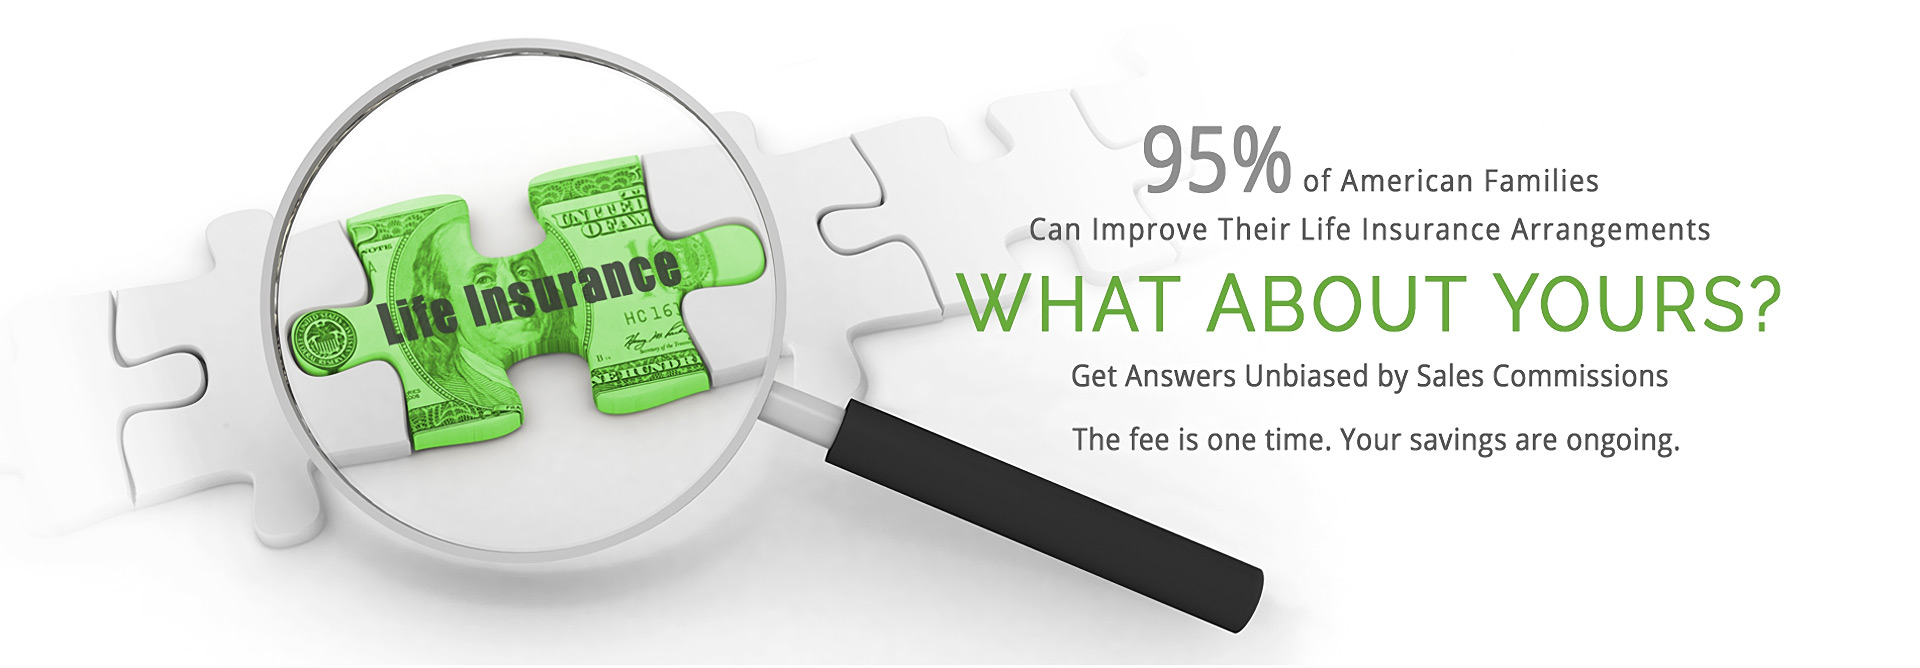 Impartial Insurance Advisor - Get Answers Unbiased by Sales Commissions